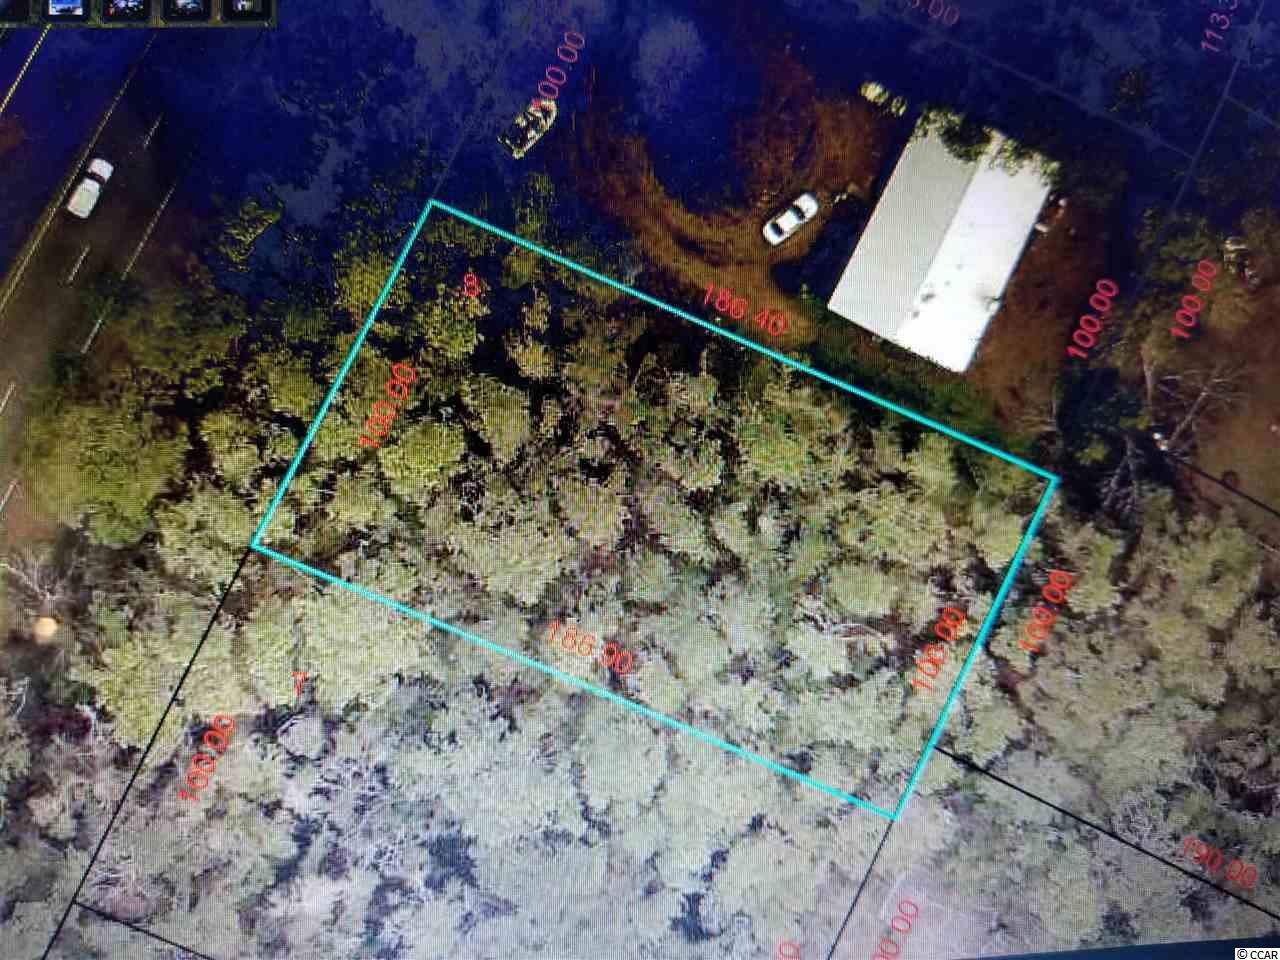 INCREDIBLE OPPORTUNITY TO OWN THIS LARGE WOODED HOME SITE IN PAWLEYS ISLAND. THIS BEAUTIFUL LOT IS LOCATED EAST OF HWY 17 AND JUST A SHORT WALK TO THE MARSH. NO HOA FEES OR RULES!! CLOSE TO THE BEACH, GOLF, DINING, SHOPPING AND FISHING!